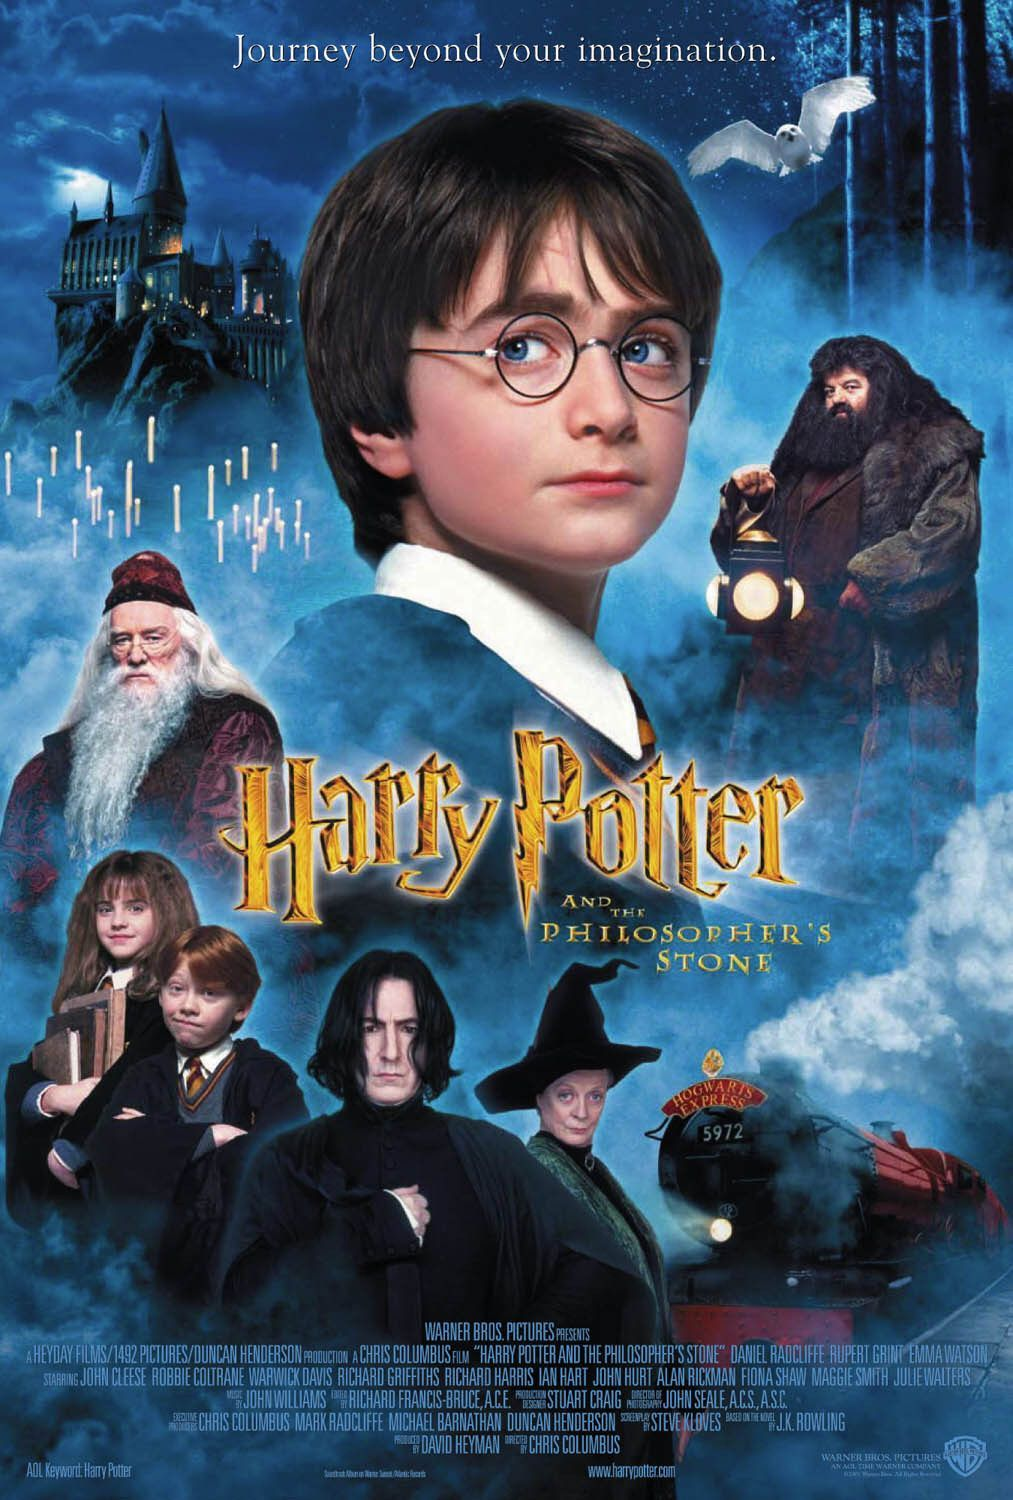 Movie To Book Recommendation Engine The Harry Potter Series